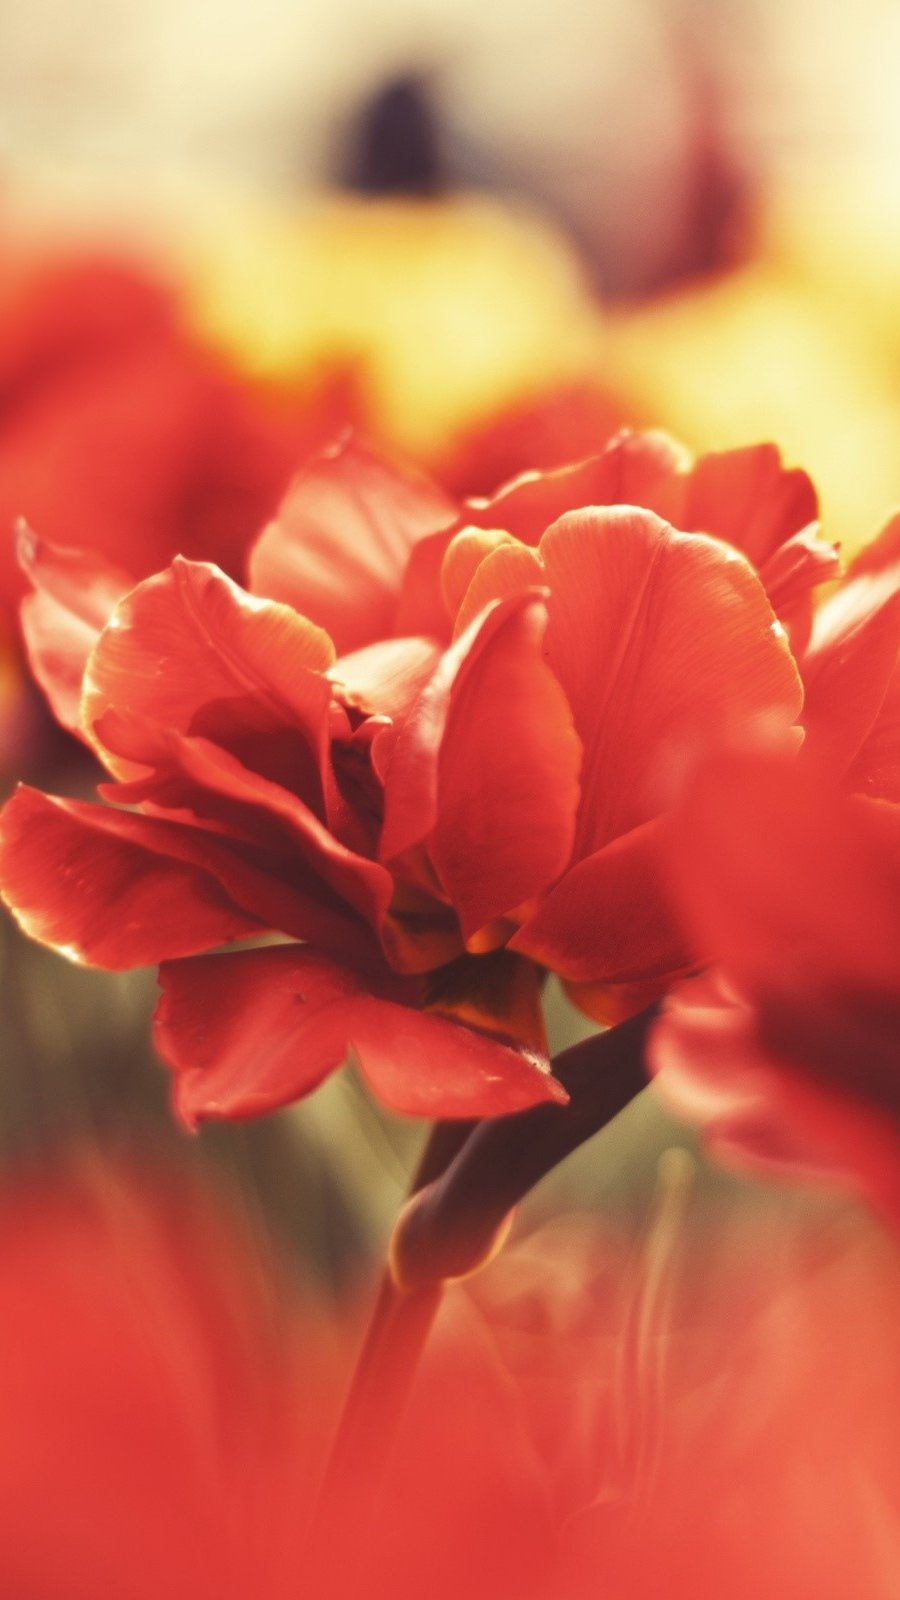 Wallpaper Red and yellow flowers Vertical